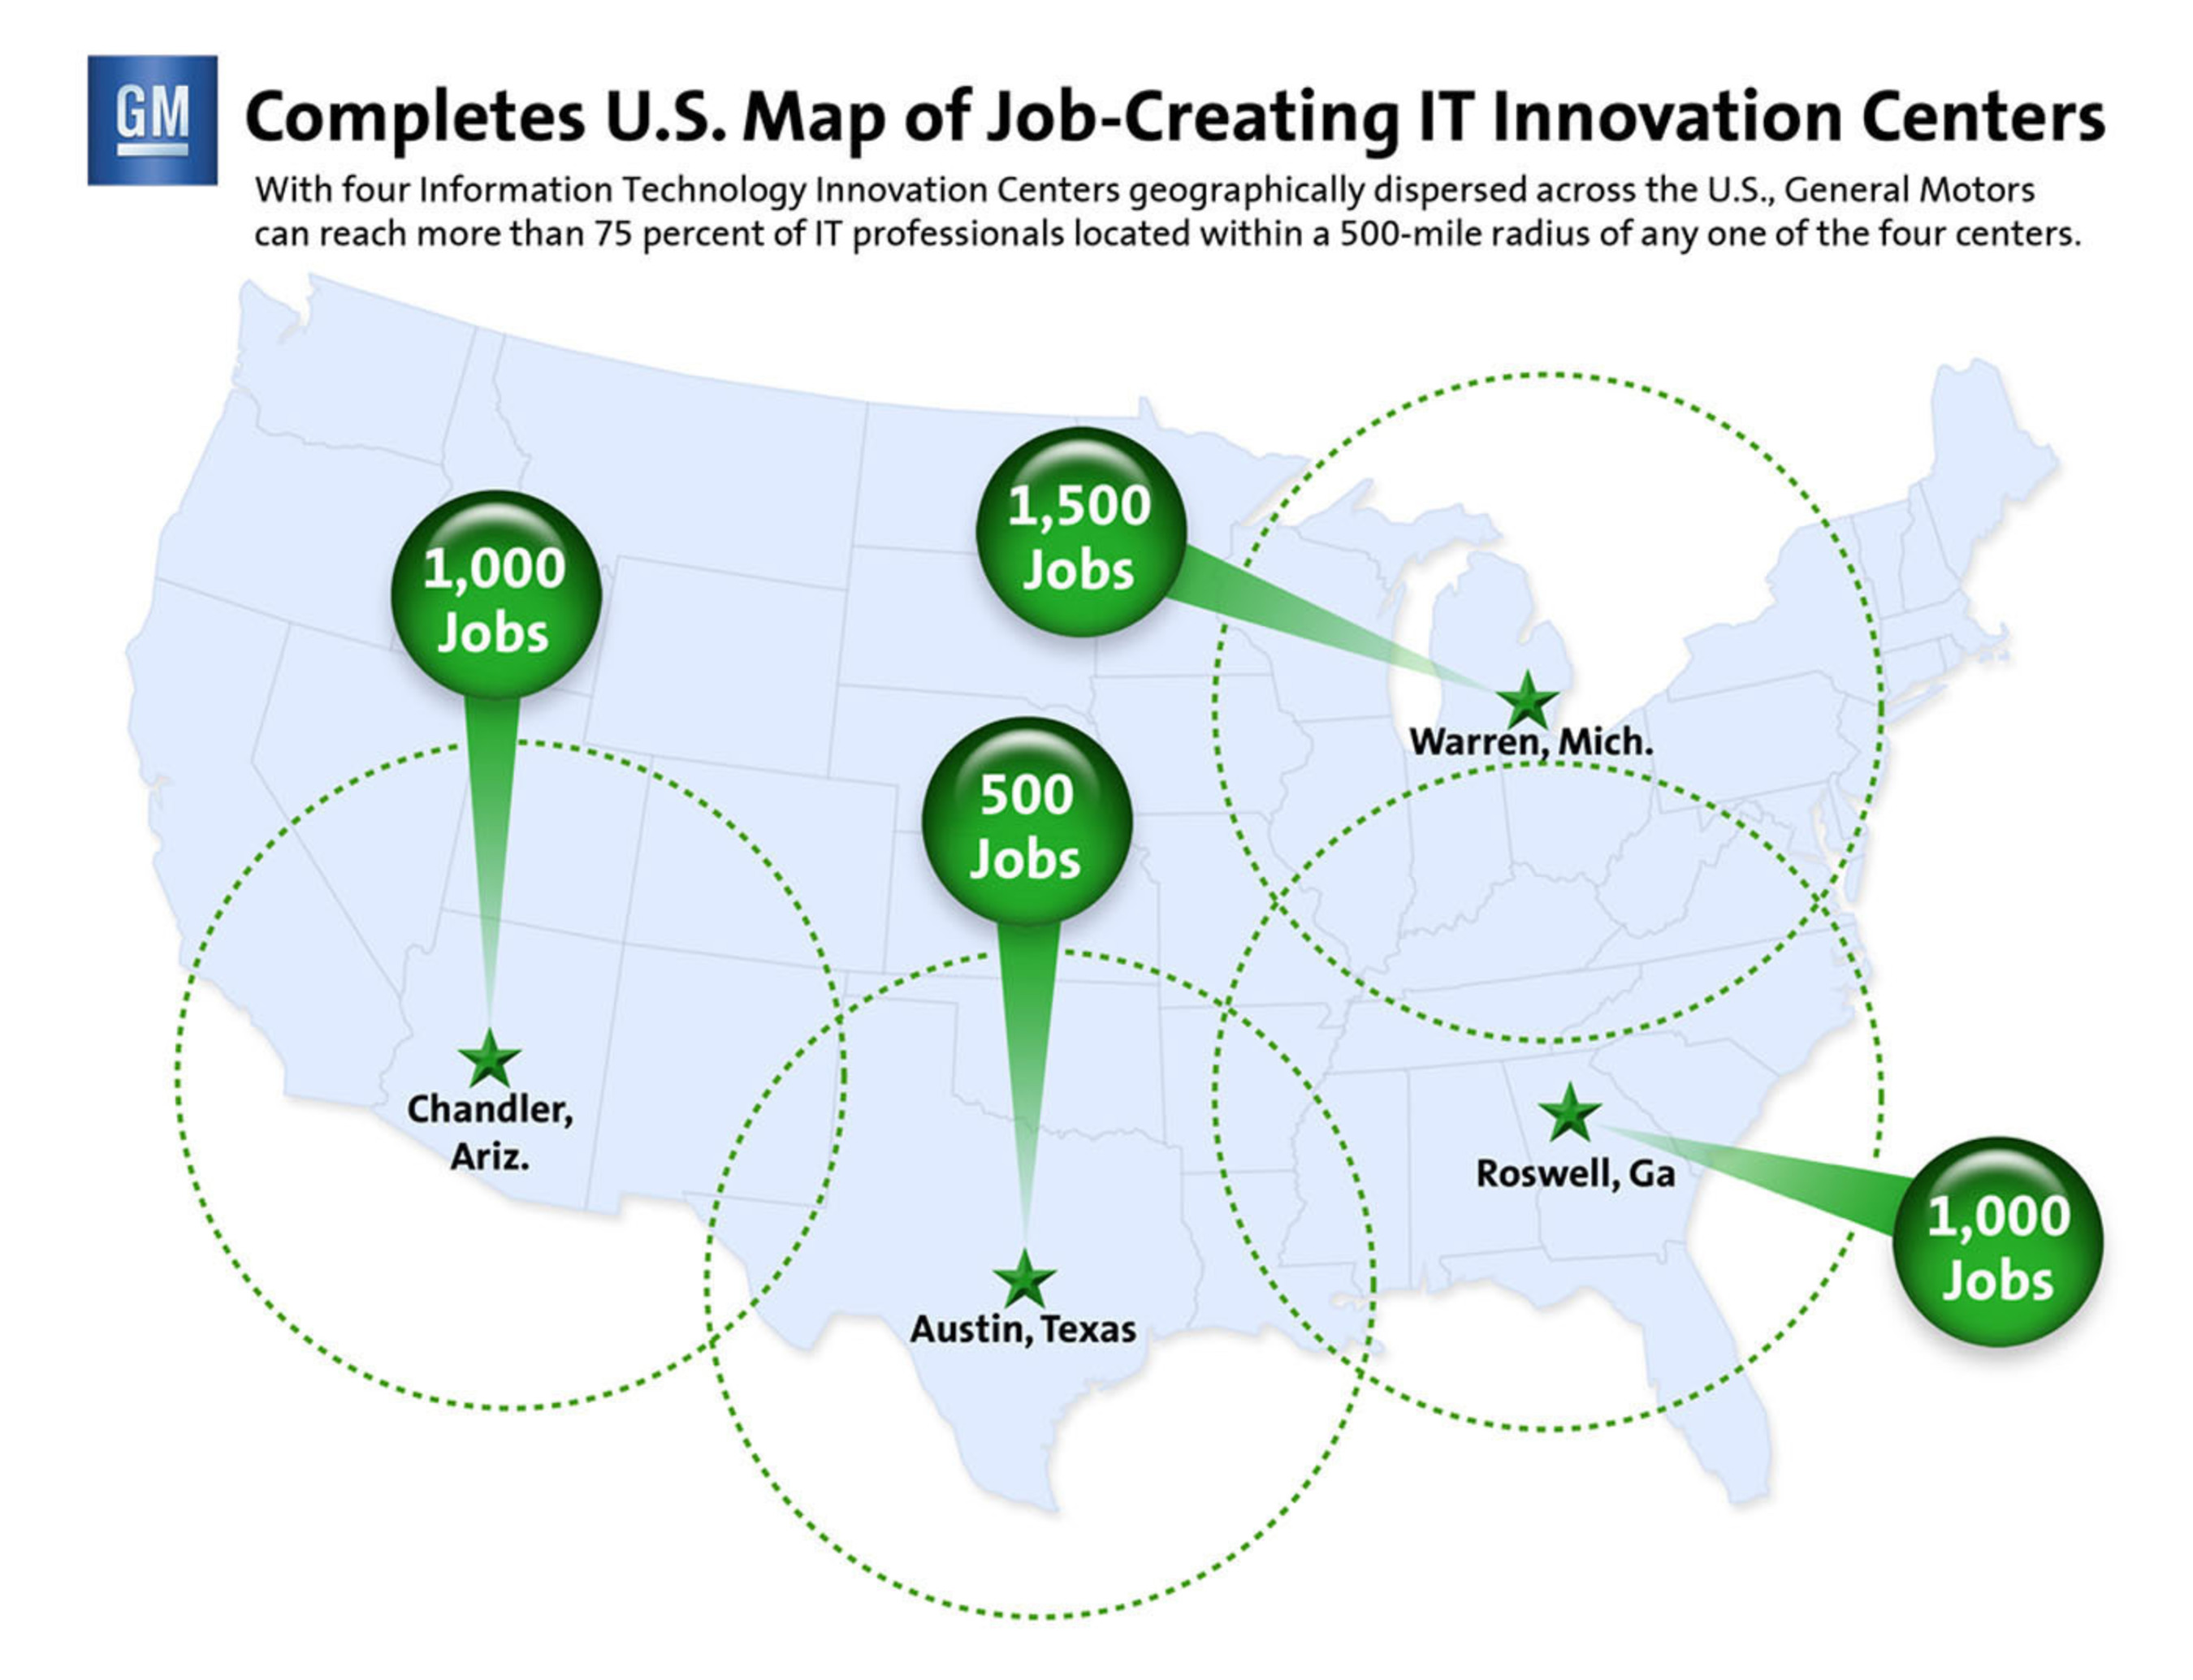 Completes U.S. Map of Job-Creating General Motors IT Innovation Centers.  (PRNewsFoto/General Motors)